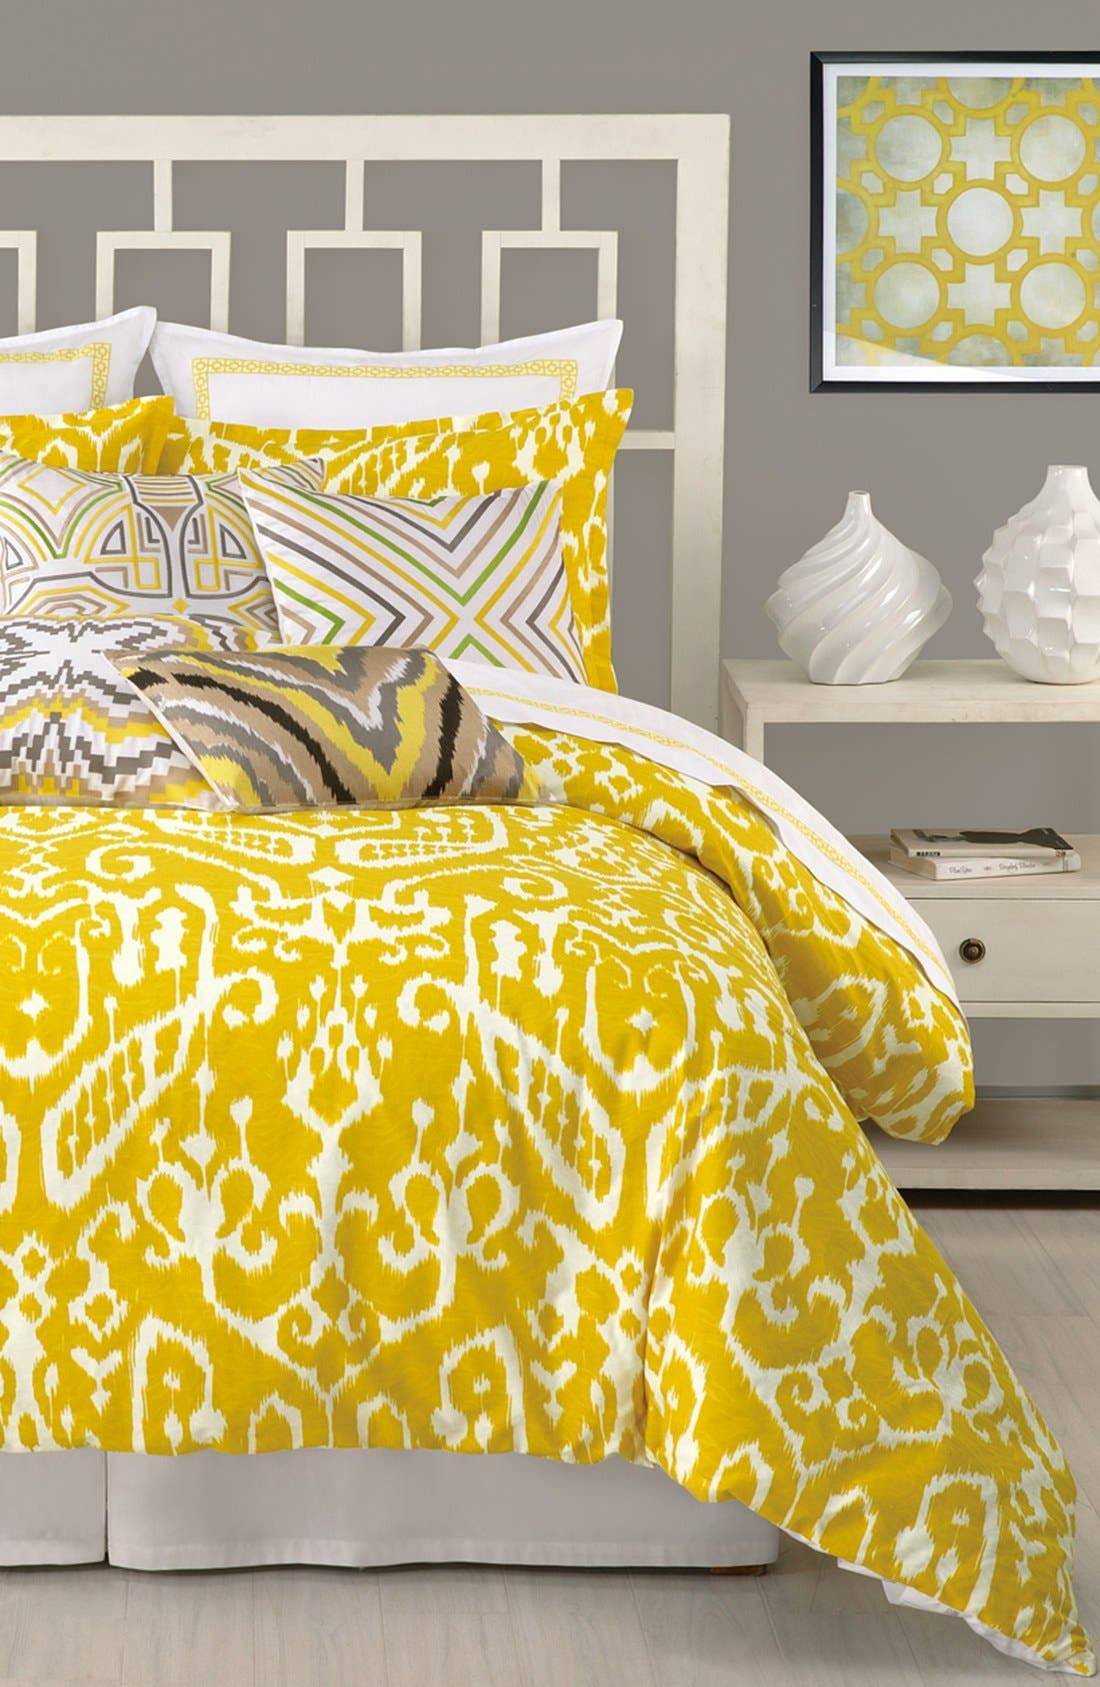 Alternate Image 1 Selected - Trina Turk Ikat Twin Duvet Cover & Sham